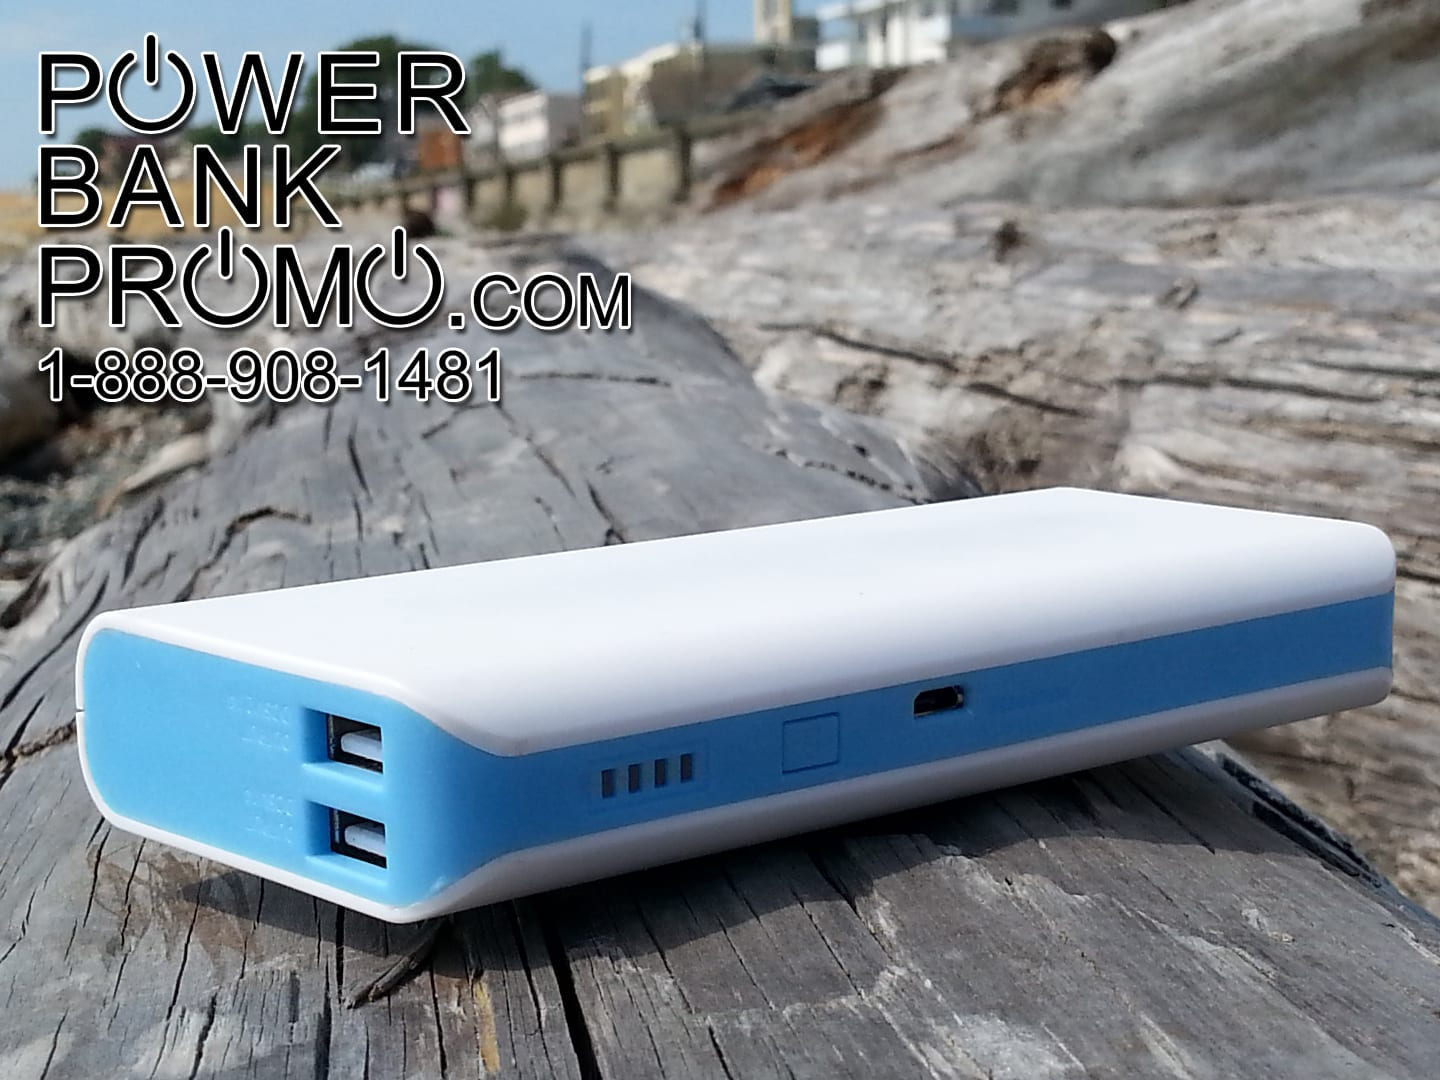 "Promo Crunch is proud to announce that it has signed an exclusive distribution deal for North America with the makers of the Genuine Power bank. ""Not all Power Banks are created equal"" states John Graham of Promo Crunch. ""Power Bank technology is cutting edge. It is only been in the last 18 months that portable battery technology capable of recharging your cell, smart phone, I-pod or android device could be made safe enough to use and small enough to fit in your pocket"" Graham goes on to say. Power Bank is the leading designer and manufacturer of portable battery technology. They are located in Shenzhen China. Promo Crunch has offices in Arizona and in Canada and sells to the promotional products and ad specialty business.  All genuine Power Banks can have a corporate, event or brand identity logo screen printed or laser engraved on it. For further information go to www.PowerBankPromo.com or email John@promocrunch.com or call 1-888-908-1481 ."